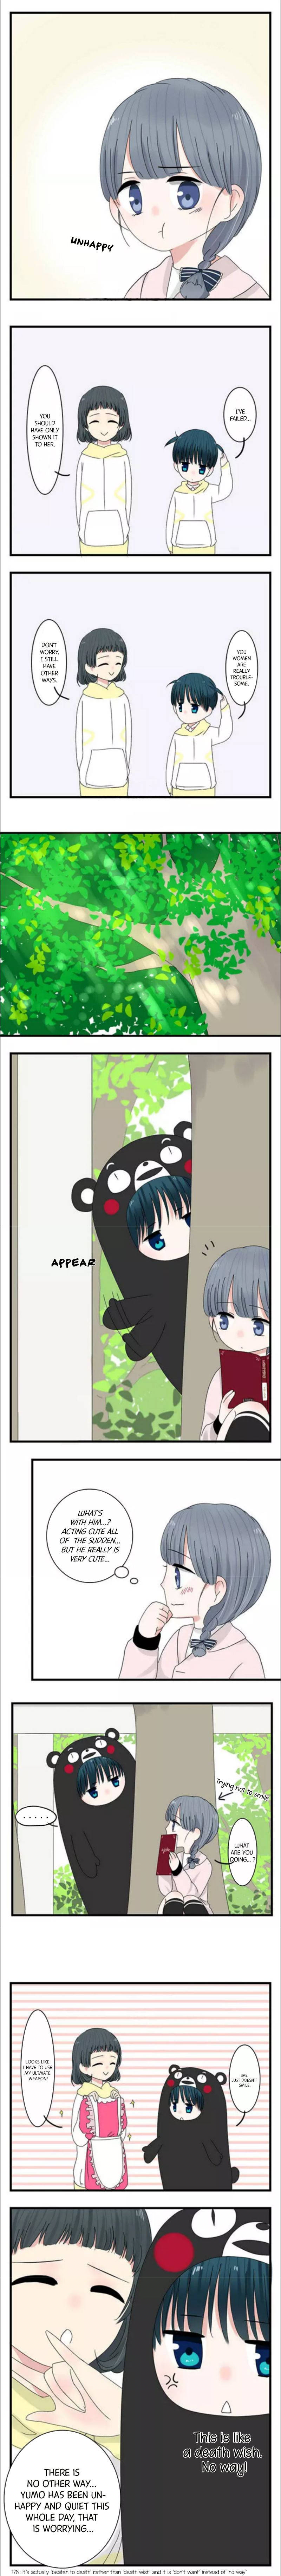 How small and innocent (No Words sequel) - chapter 6 - #2